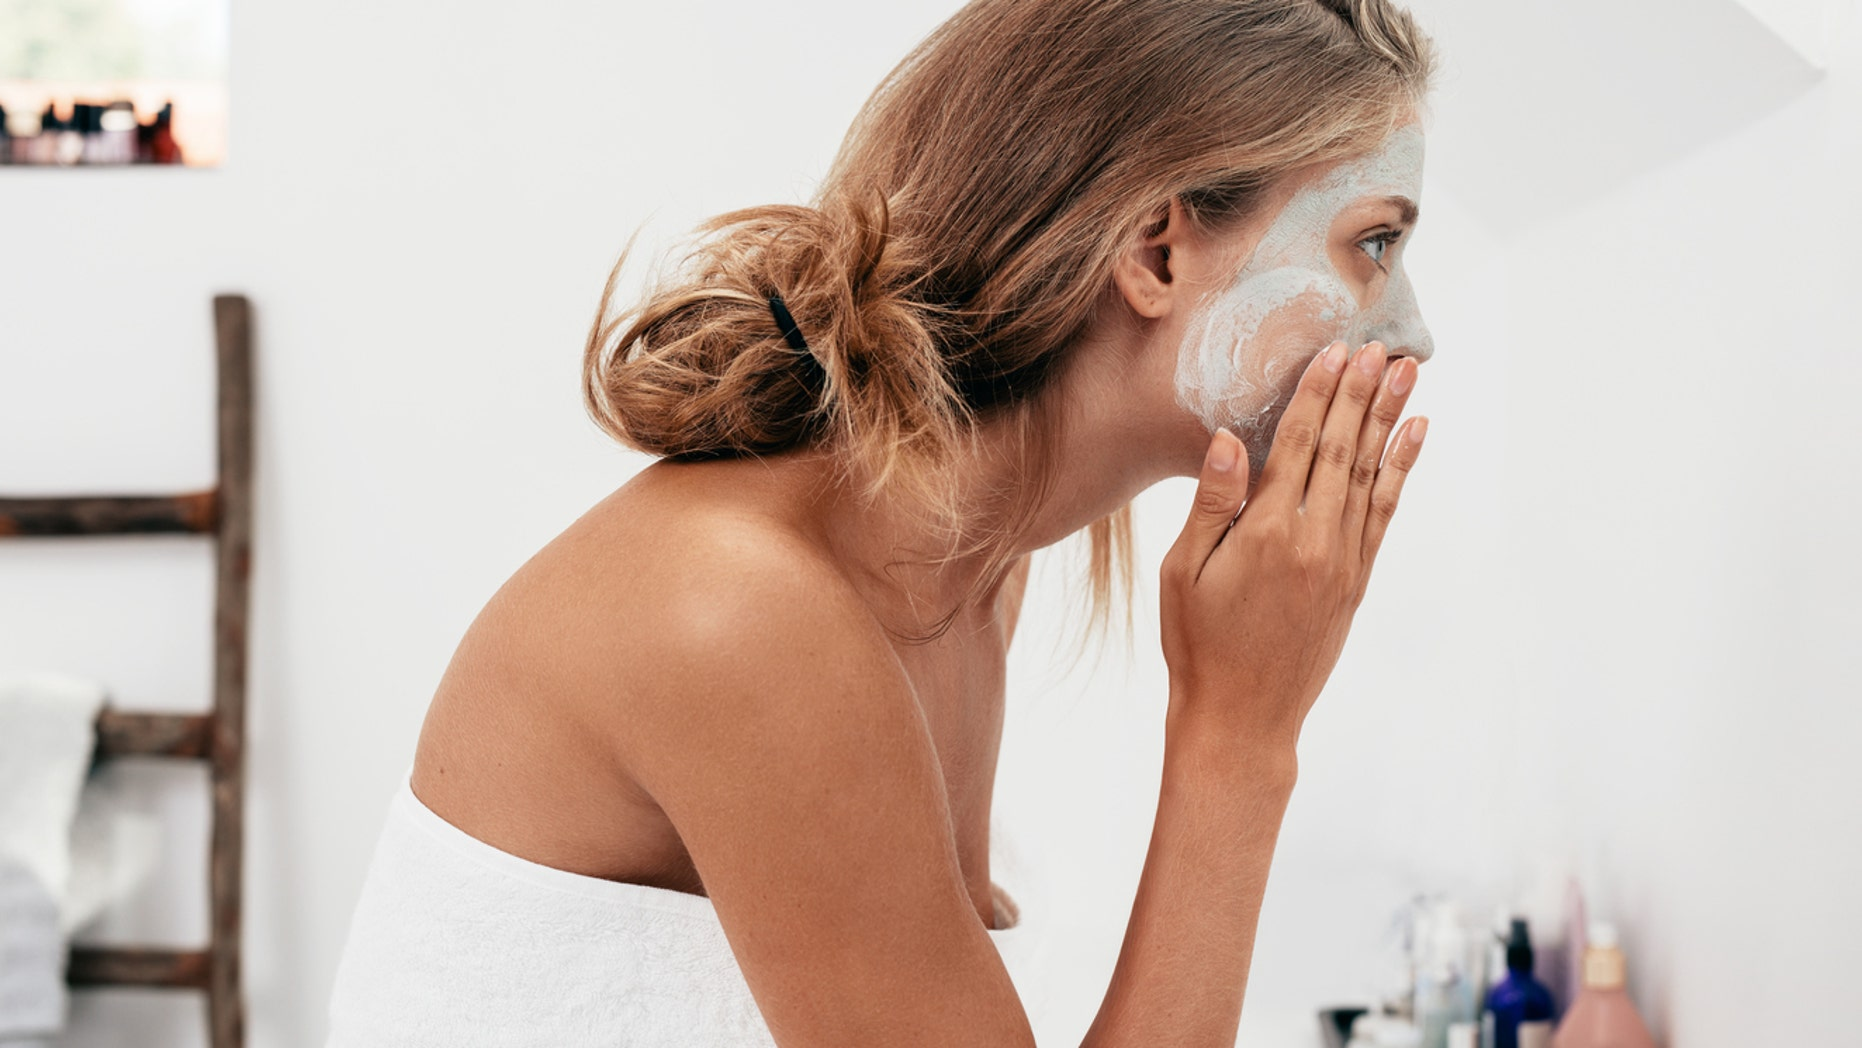 Now is the perfect time to spruce up your skincare routine.